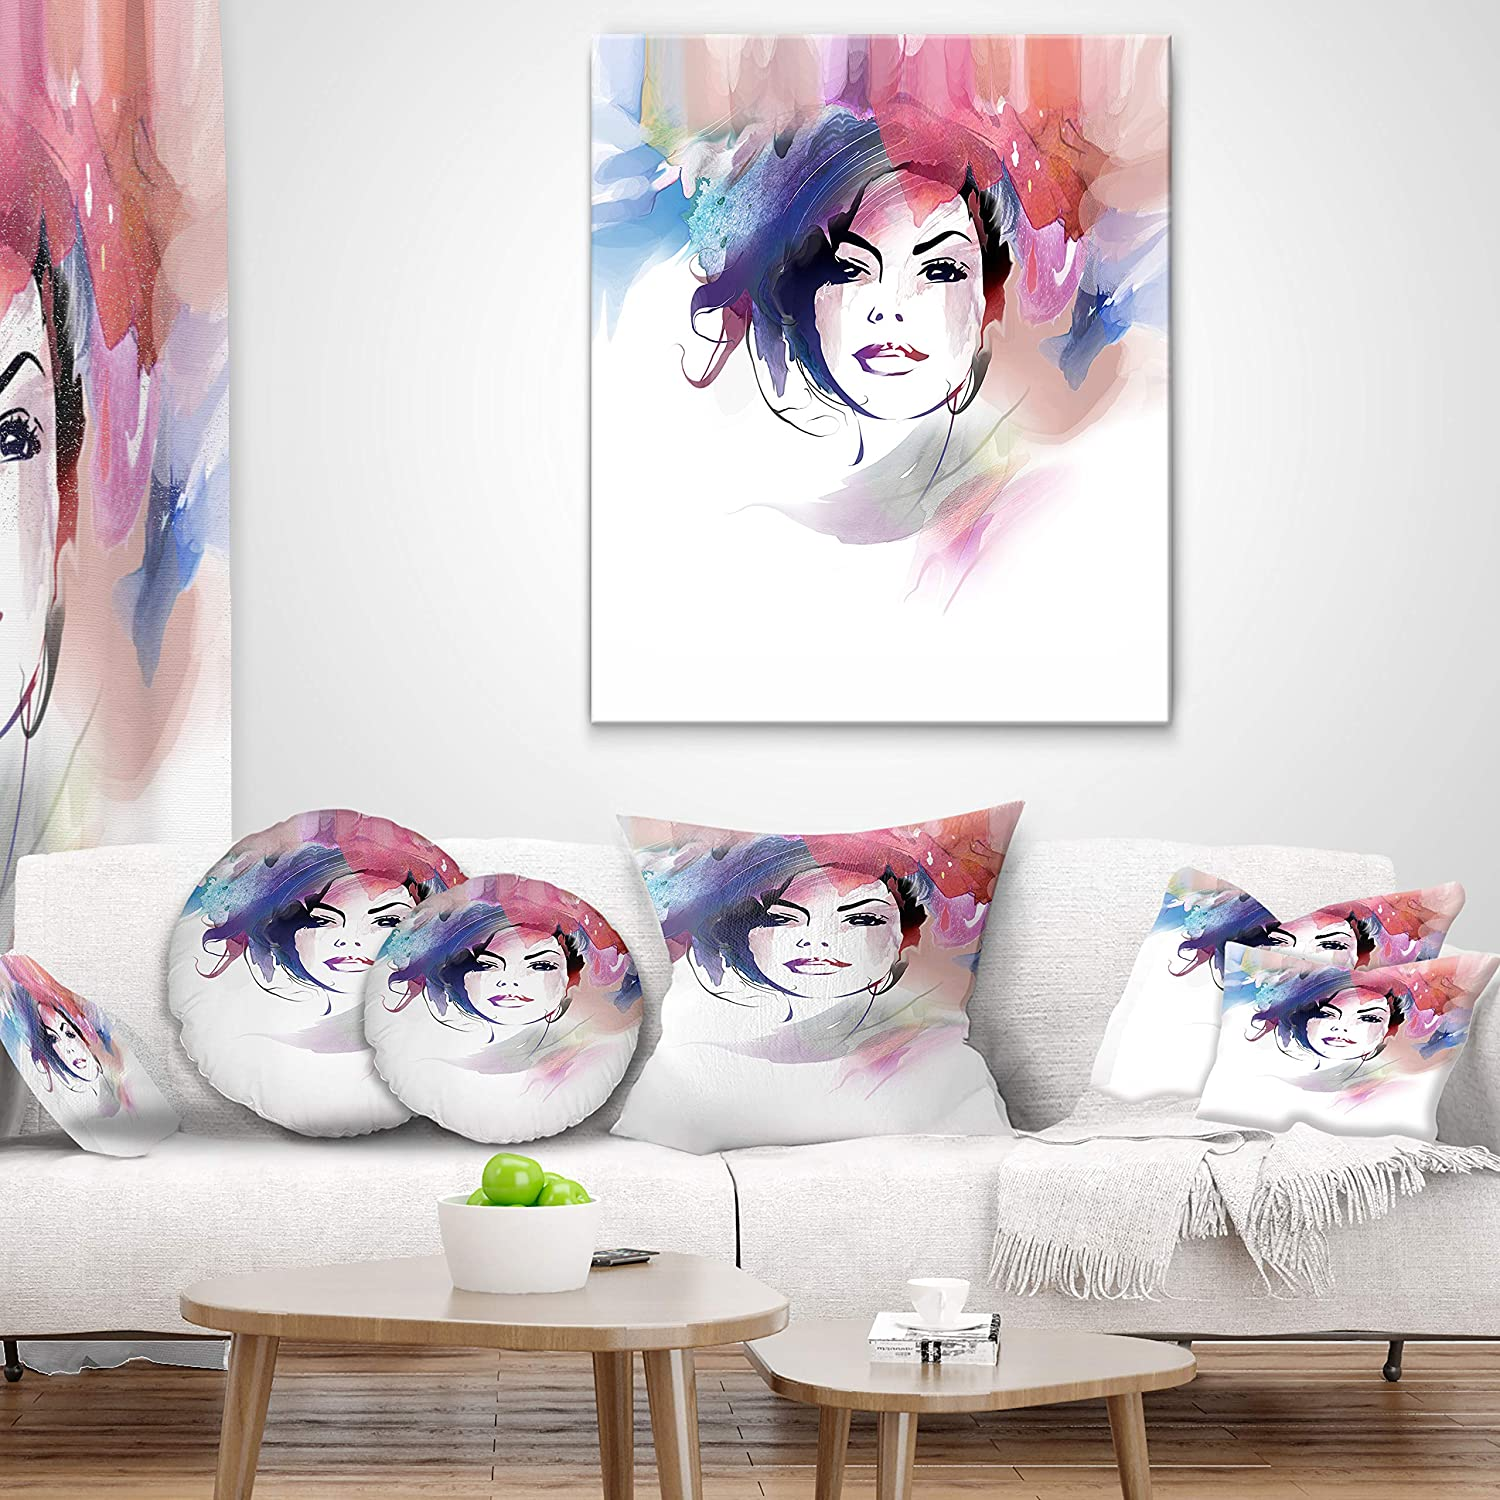 Sofa Throw Pillow 12 in in Designart CU6685-12-20 Beautiful Girl Portrait Lumbar Cushion Cover for Living Room Insert Printed On Both Side x 20 in